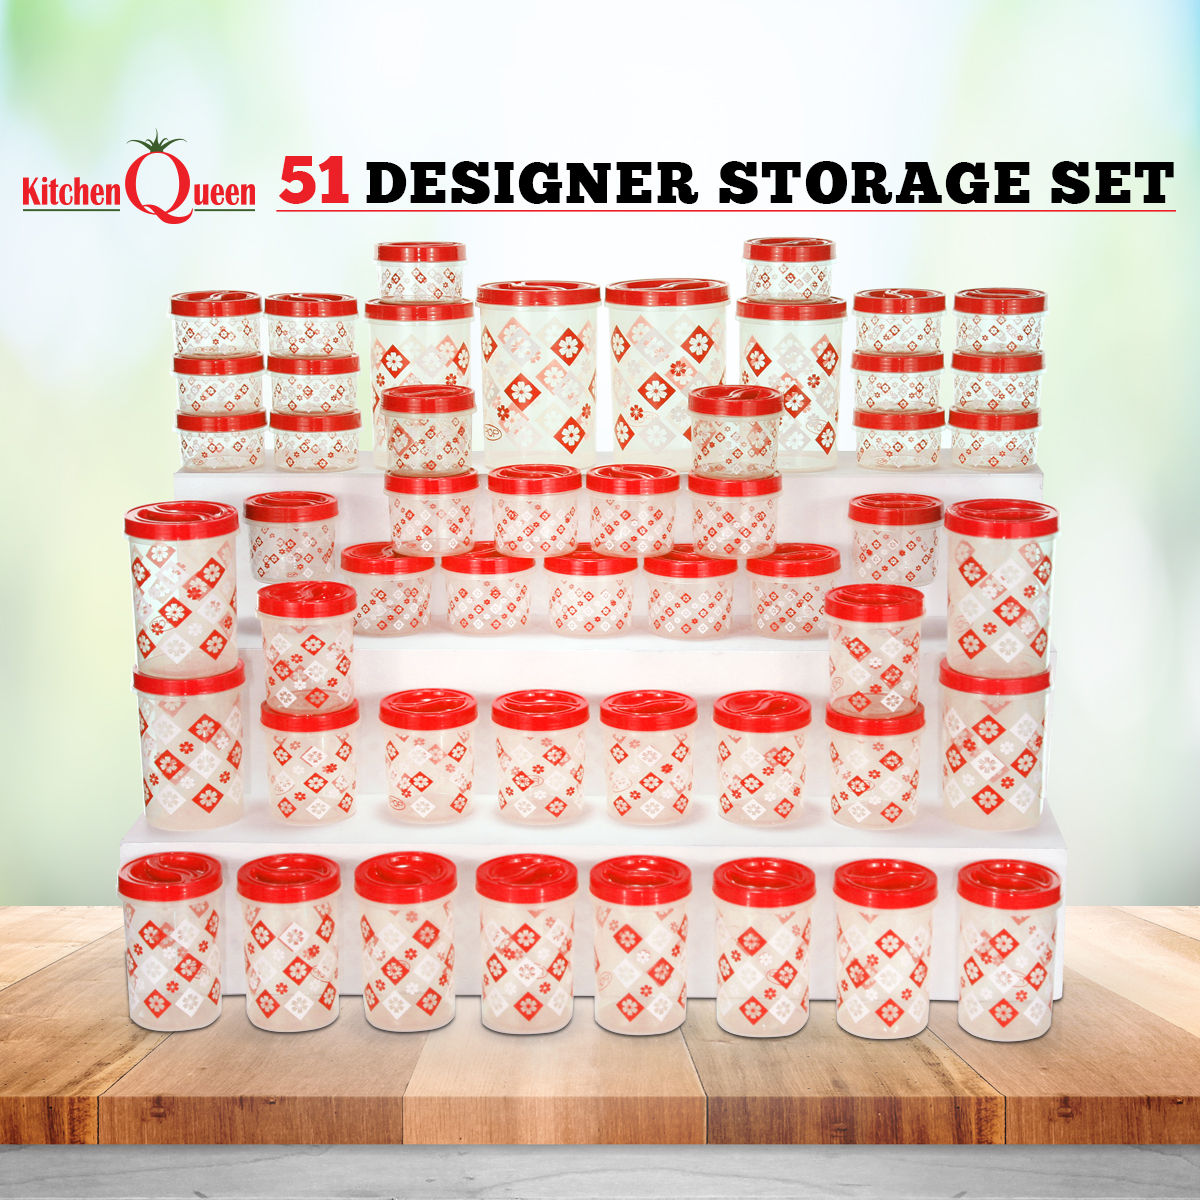 Buy 51 Designer Storage Set Online At Best Price In India On Naaptol Com